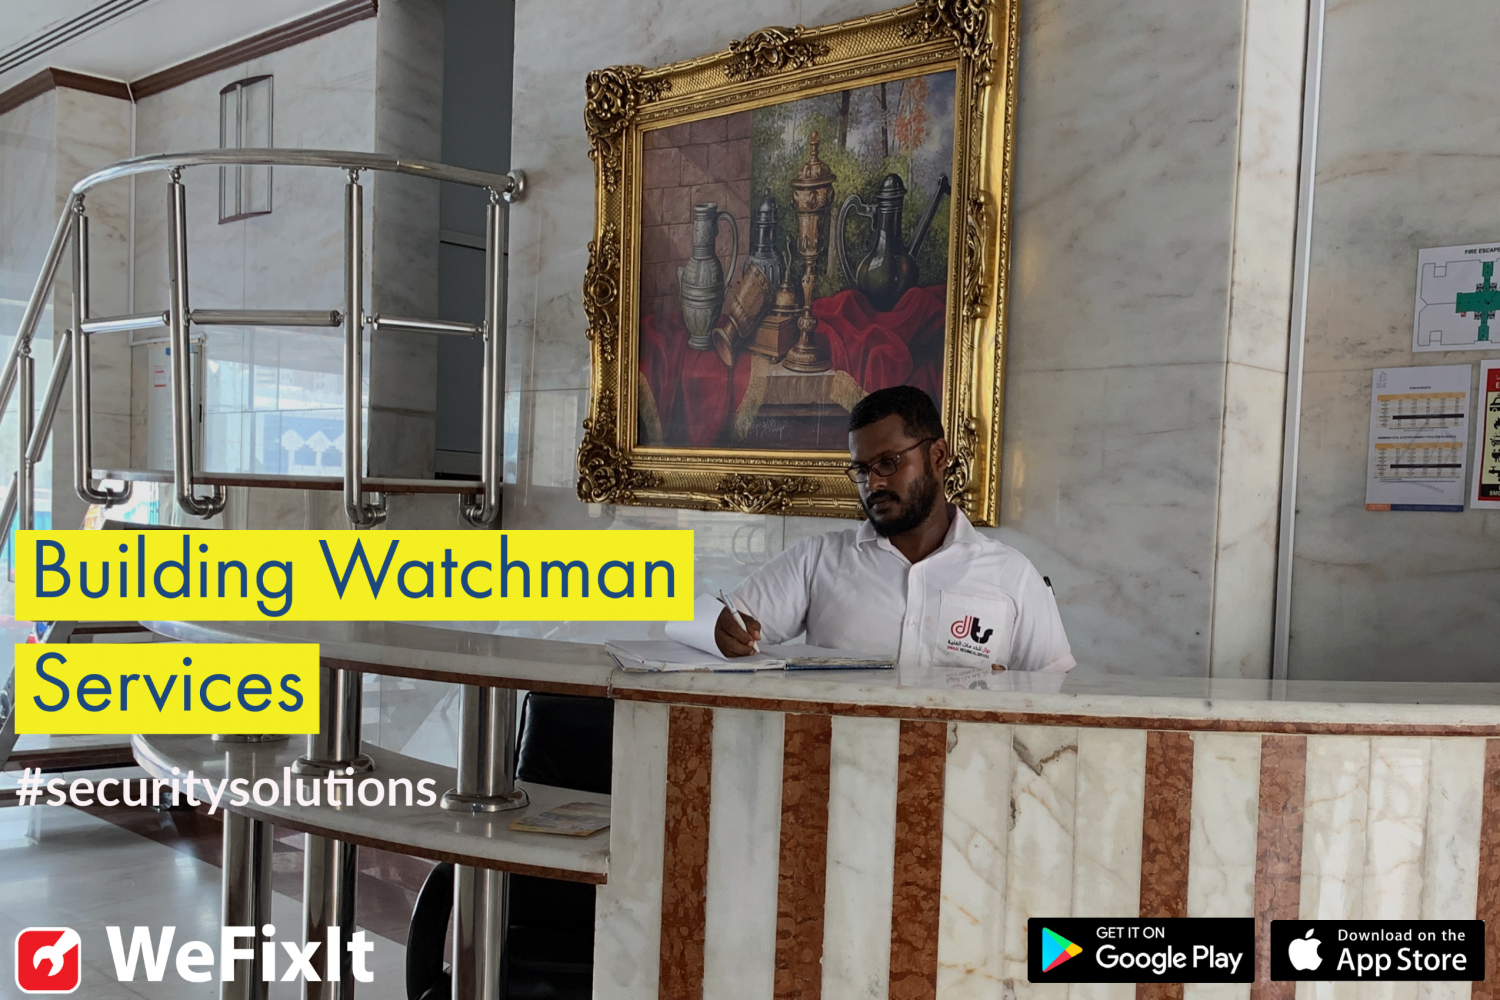 Building Watchman Services Infographic